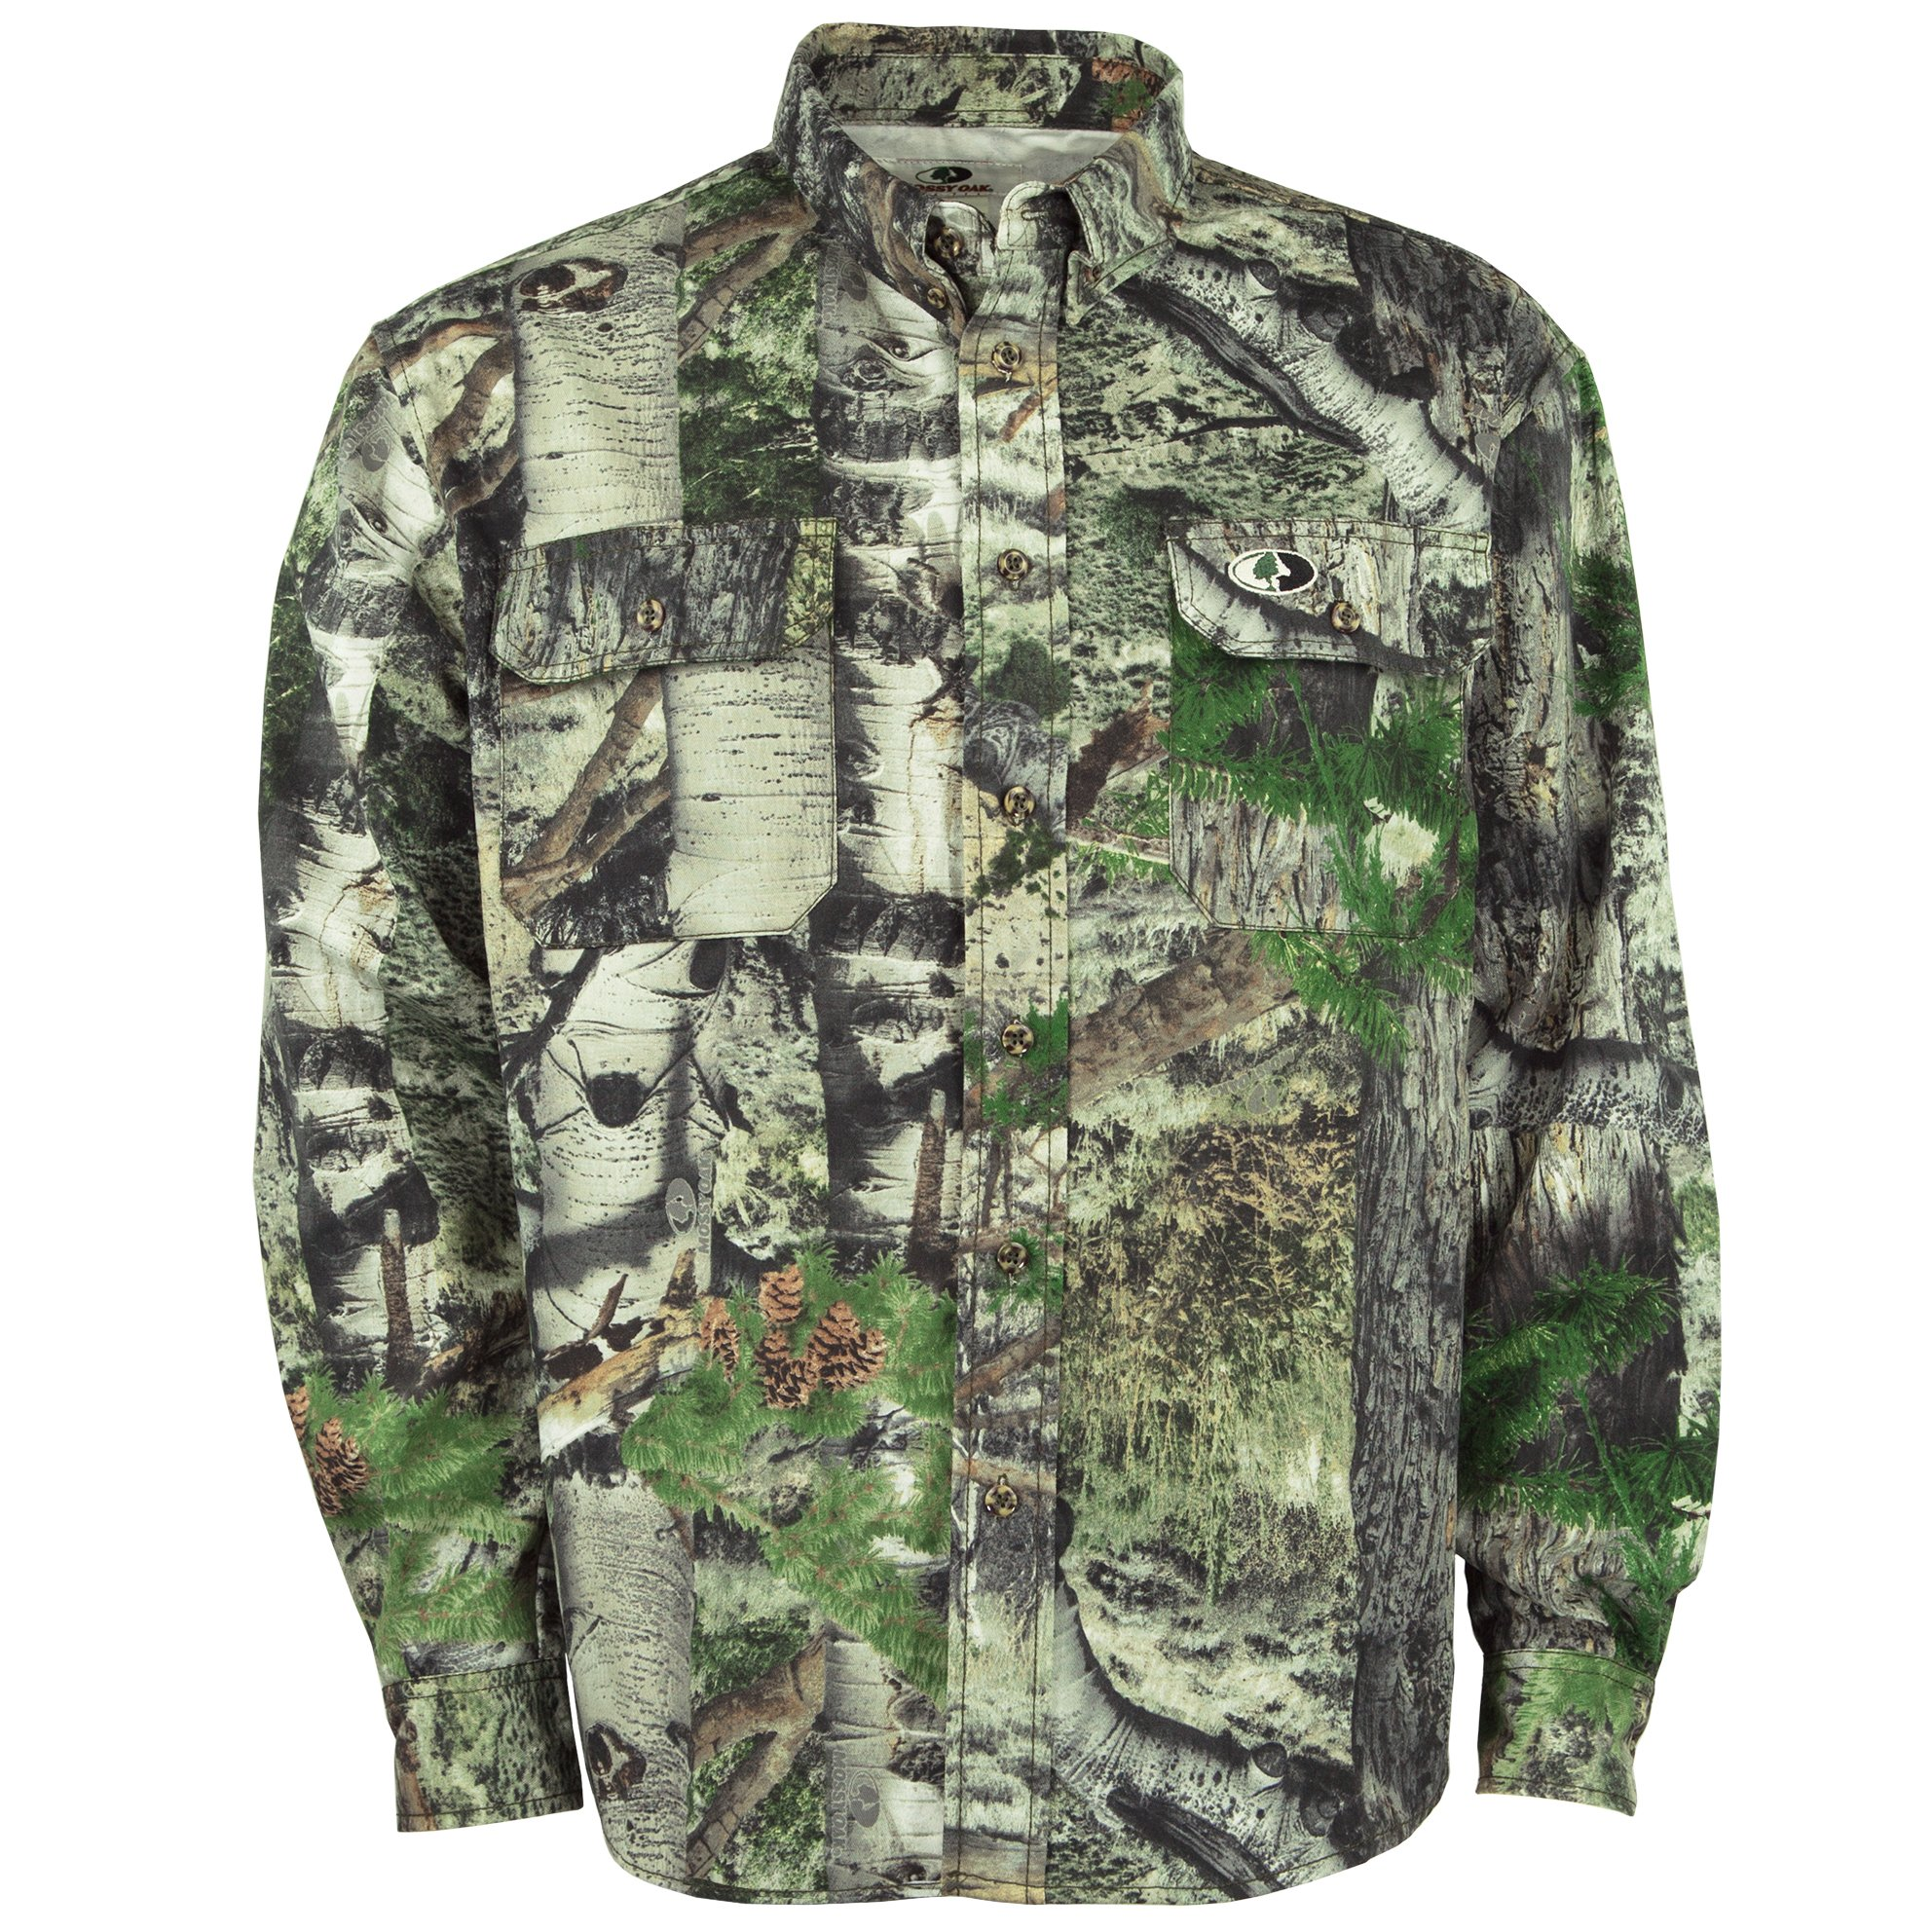 Mossy Oak Camouflage Cotton Mill Hunt Shirt, Mountain Country, 2X by Mossy Oak